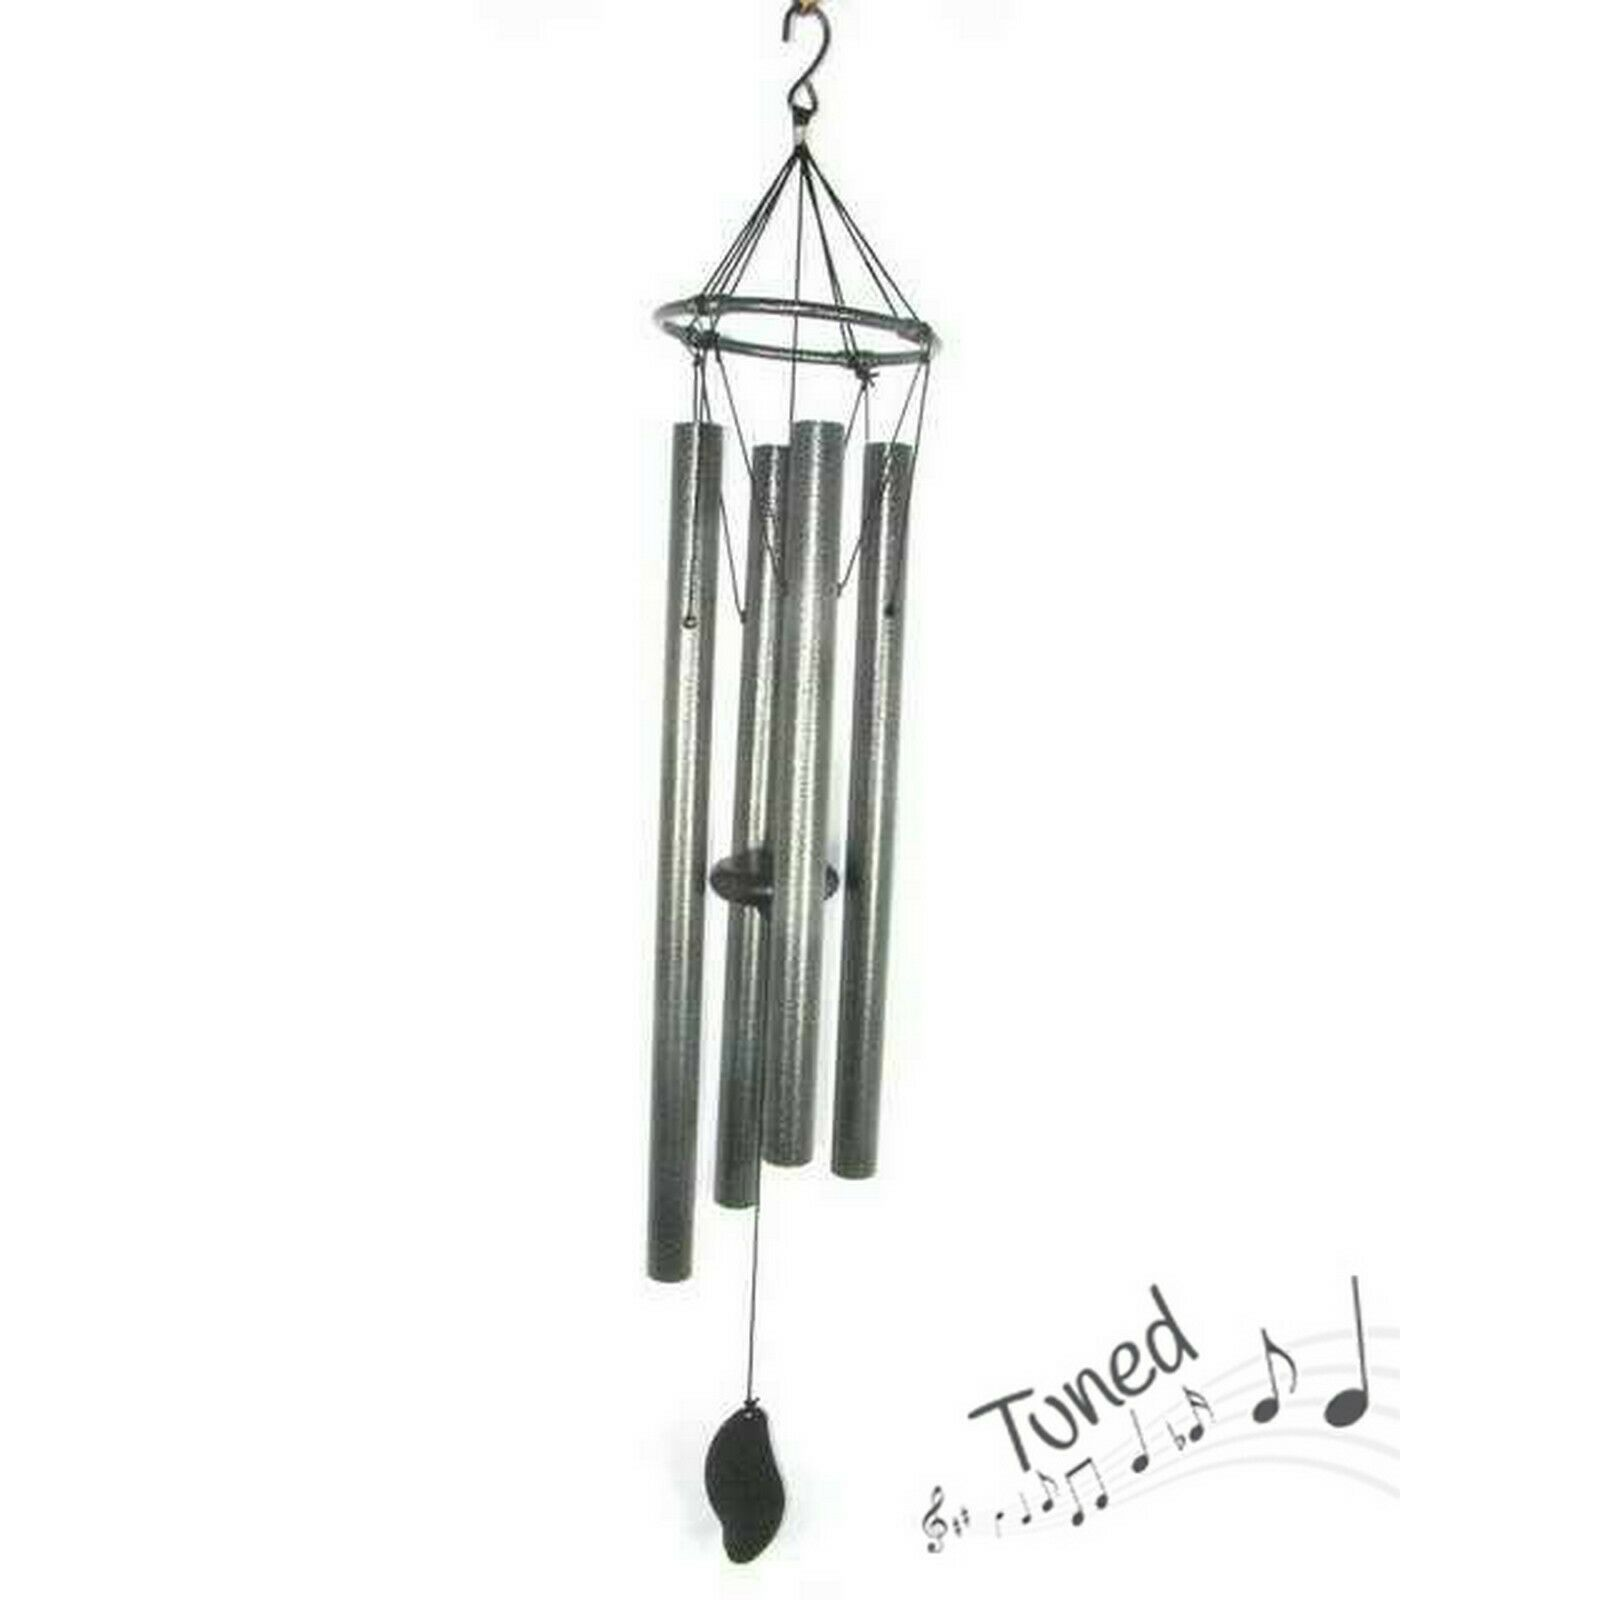 85cm Natures Melody Classic Tuned Silver Metal Musical Wind Chime 4 Tube Large